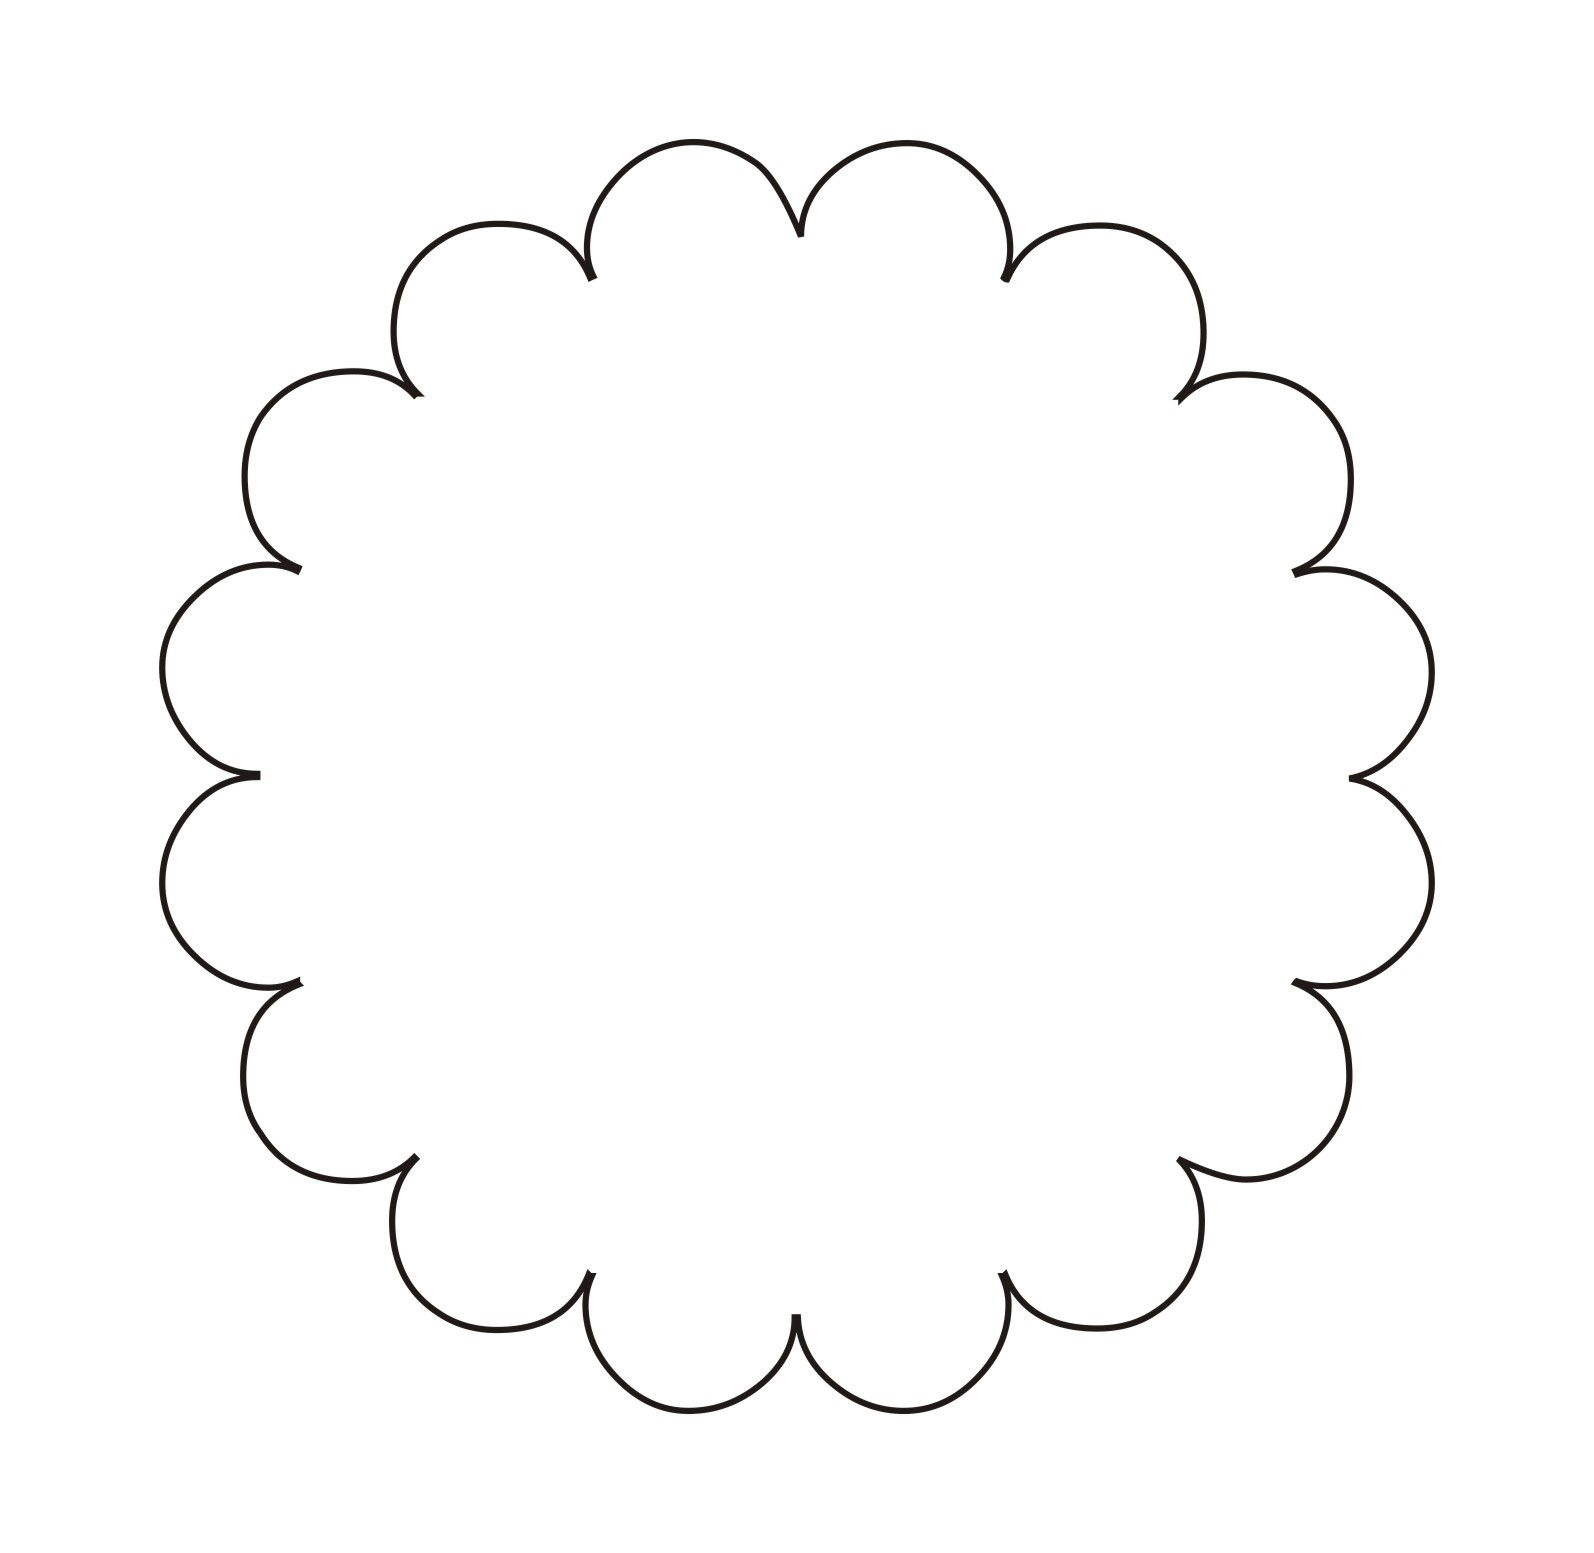 1594x1553 9 Best Images Of With Circle Label Shapes